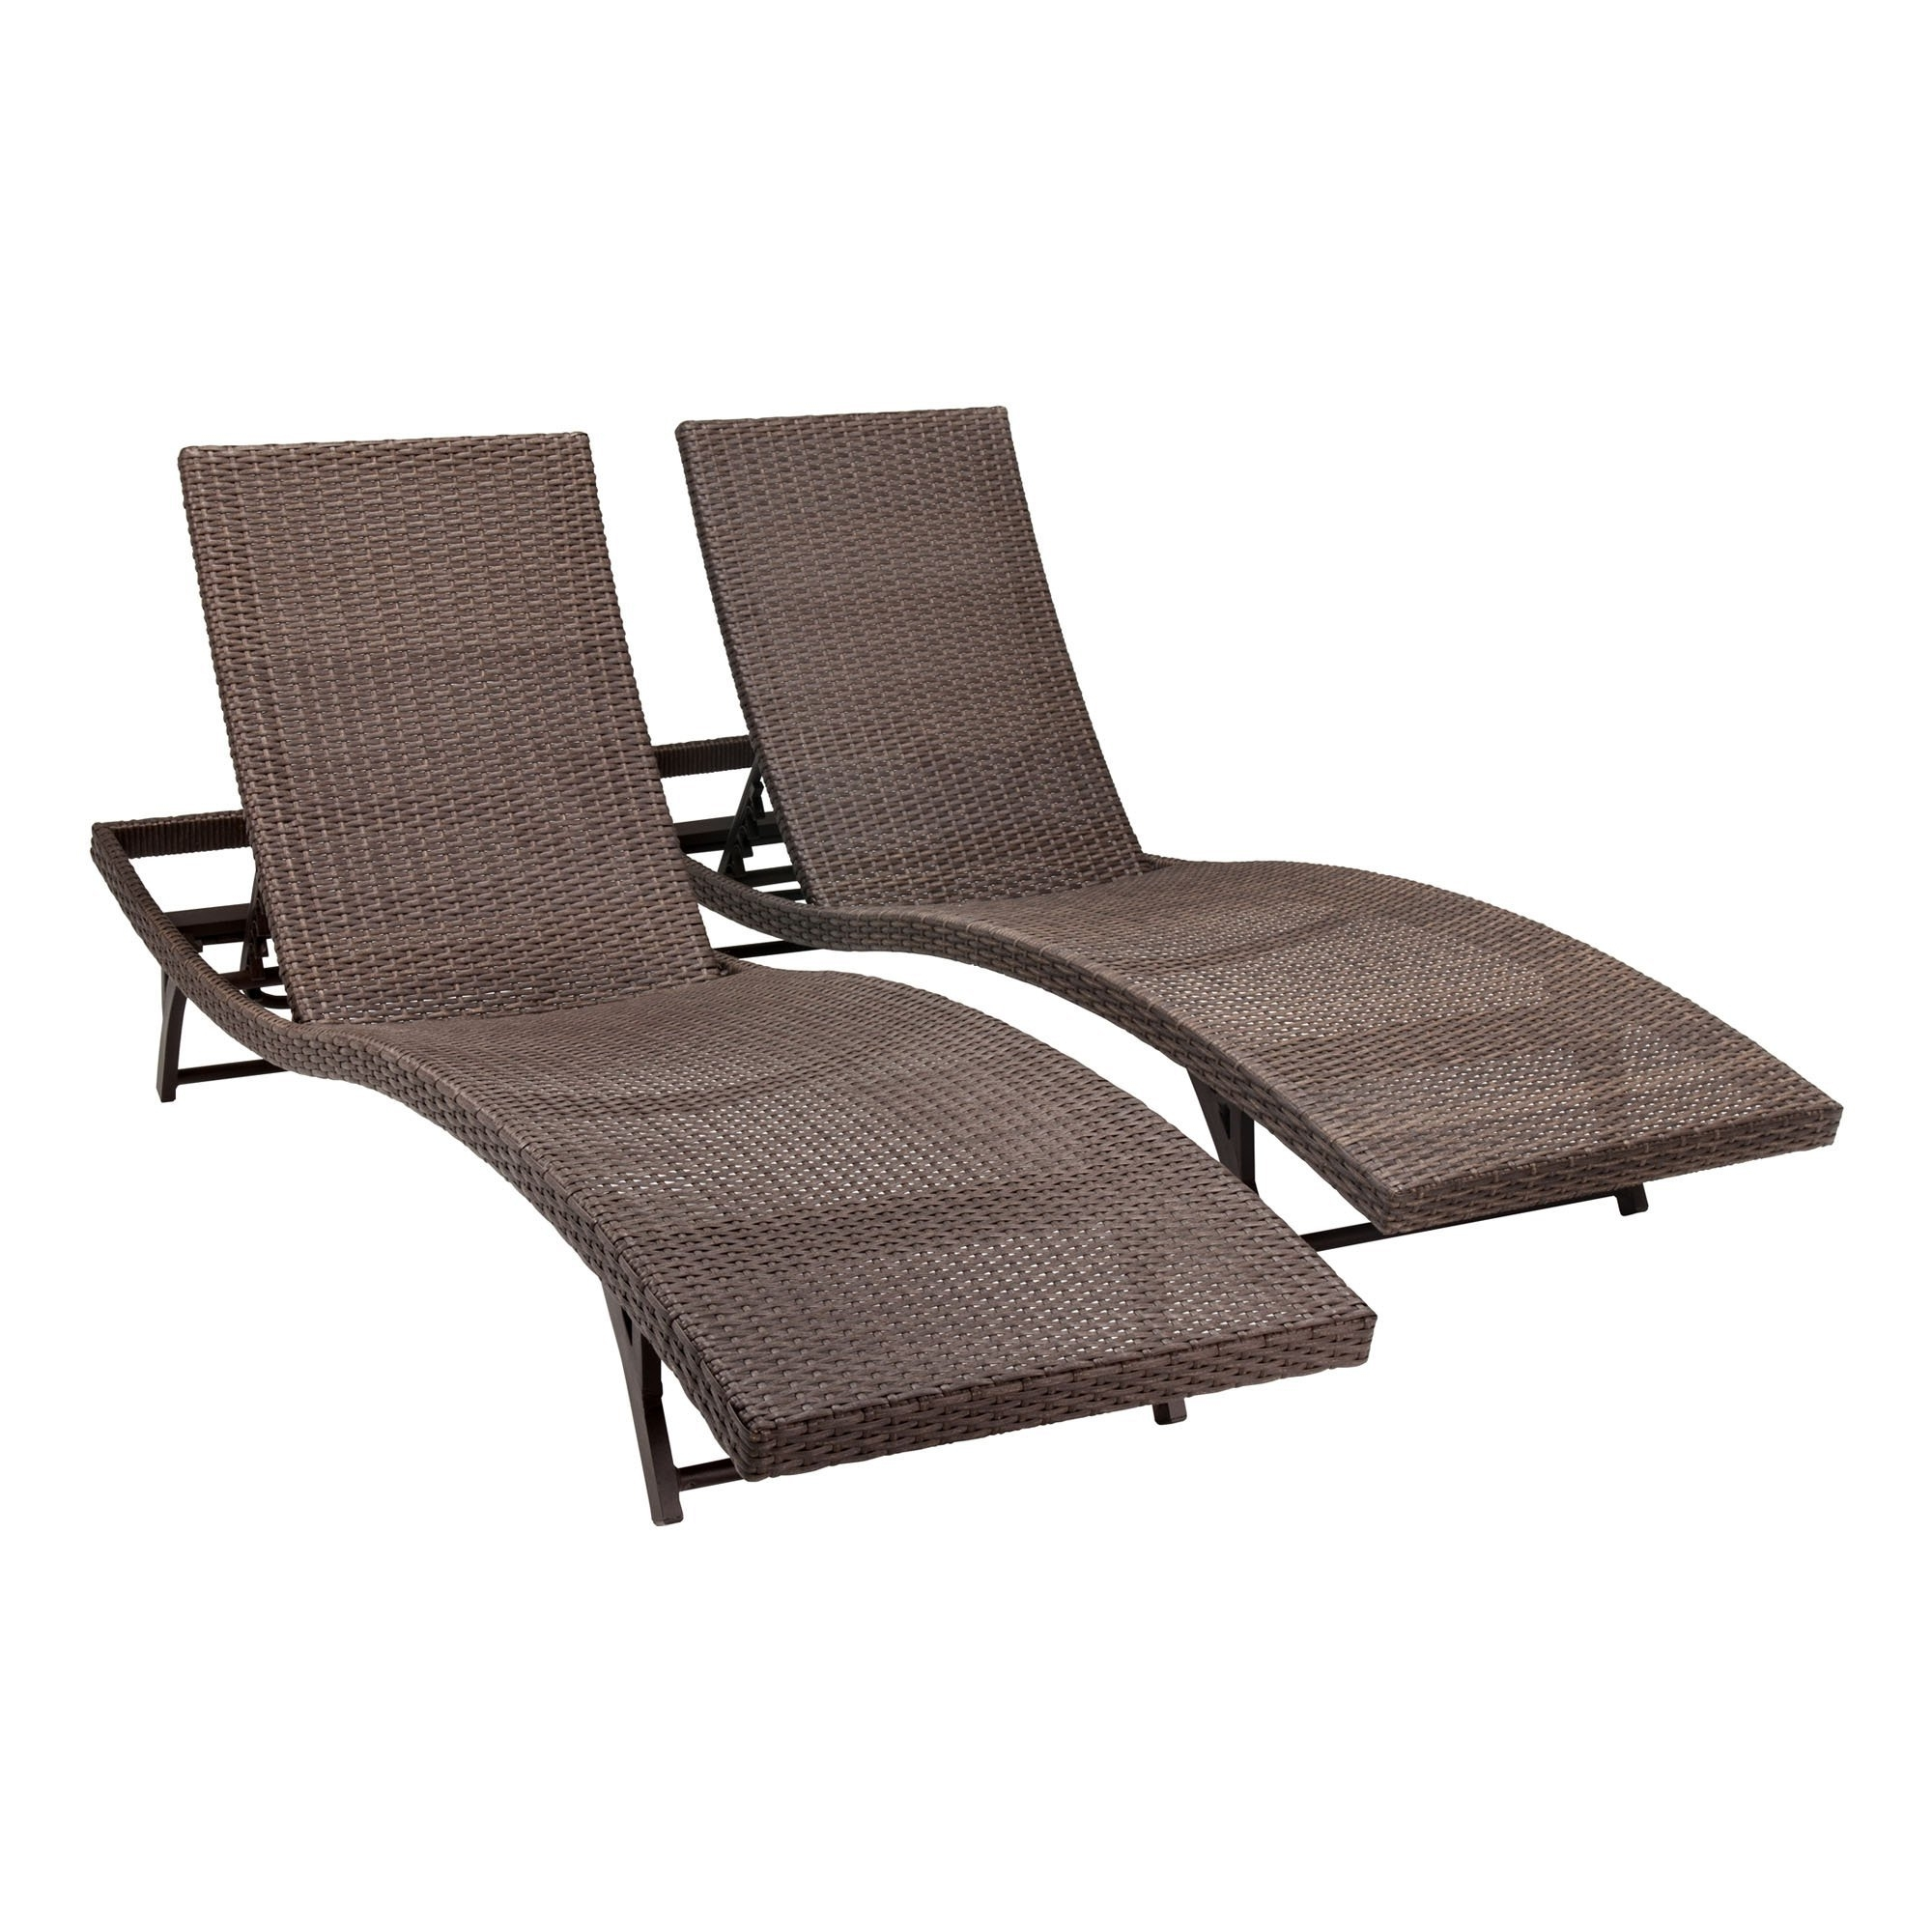 Outdoor Chaise Lounge Chairs Ideas : Best Outdoor Chaise Lounge Inside Popular Chaise Lounge Chairs For Outdoors (View 12 of 15)